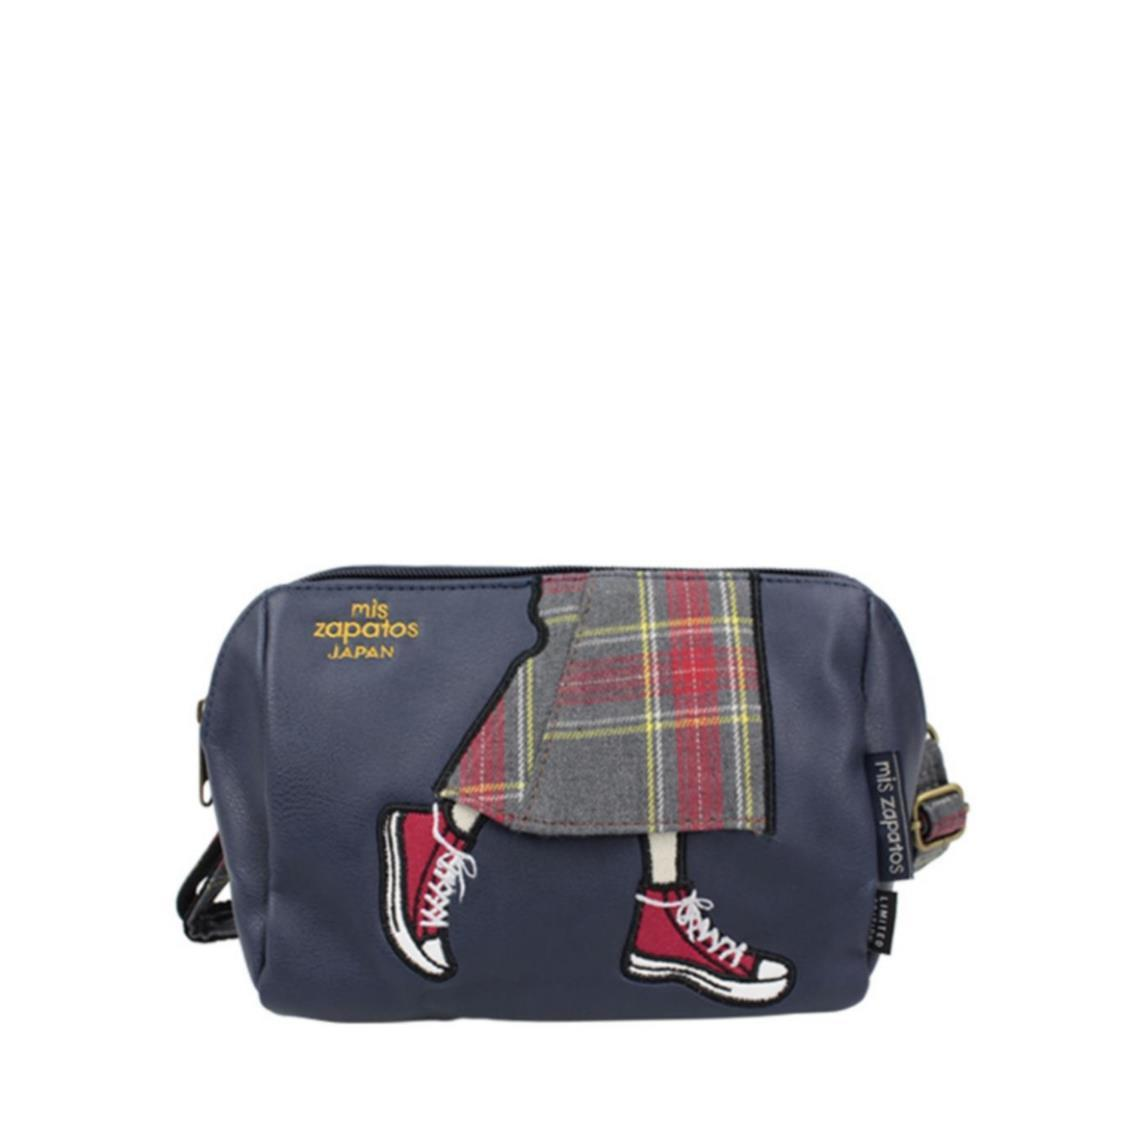 2-Way Use Jeans Skirt With Sneakers Slingbag